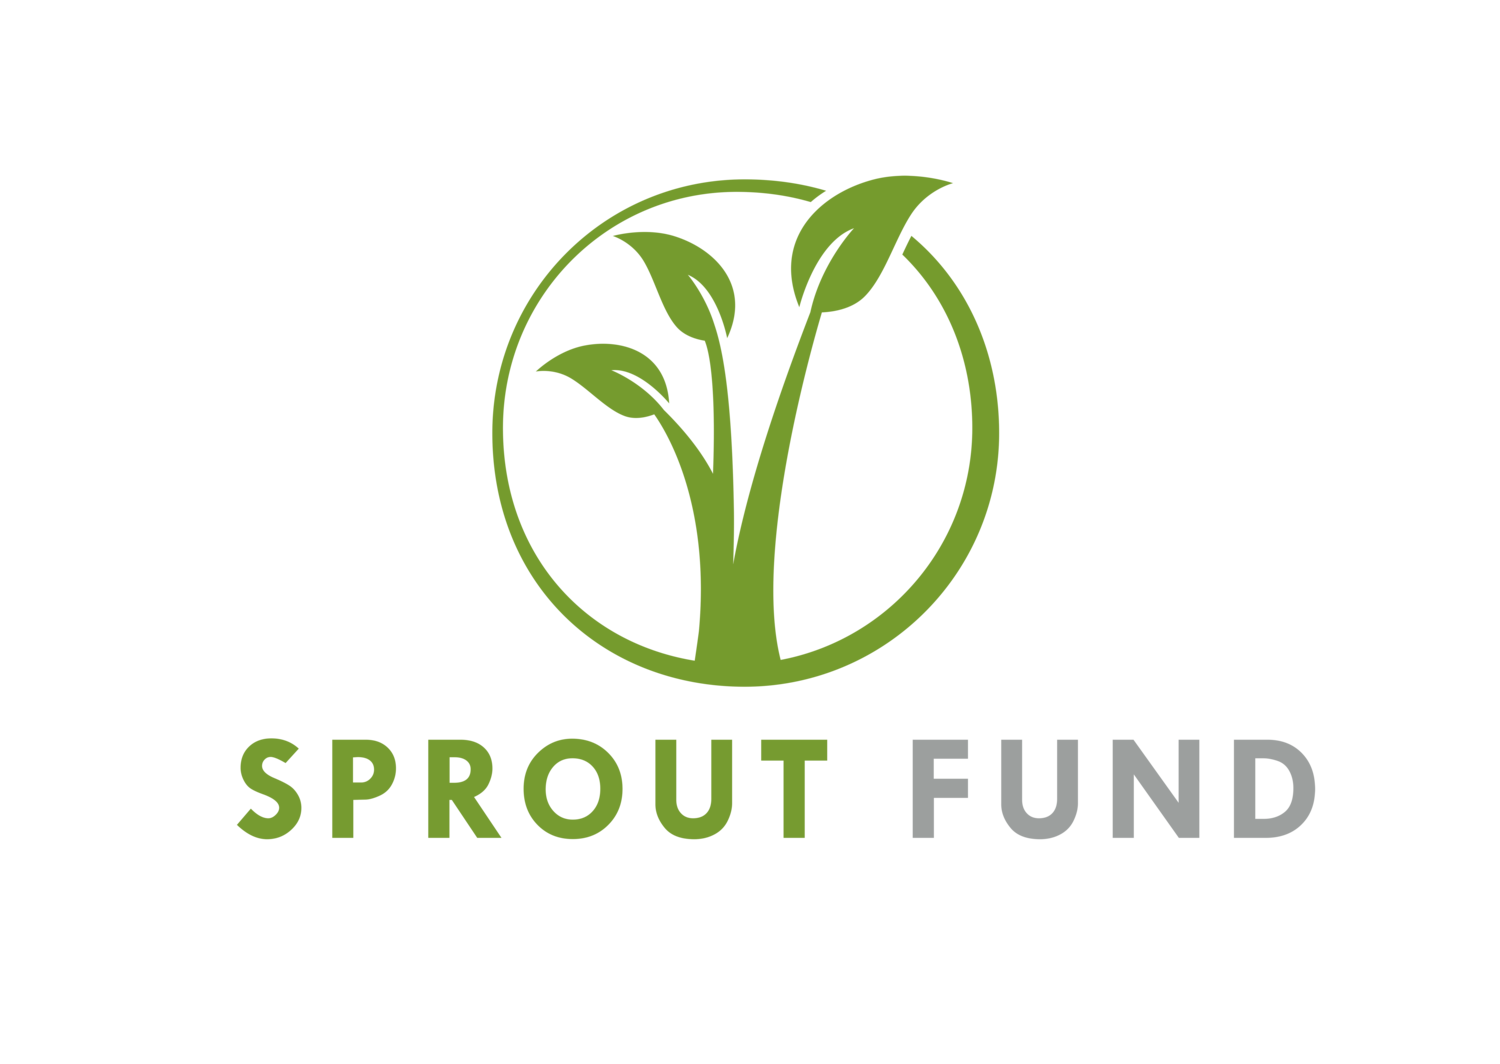 Sprout Fund LP